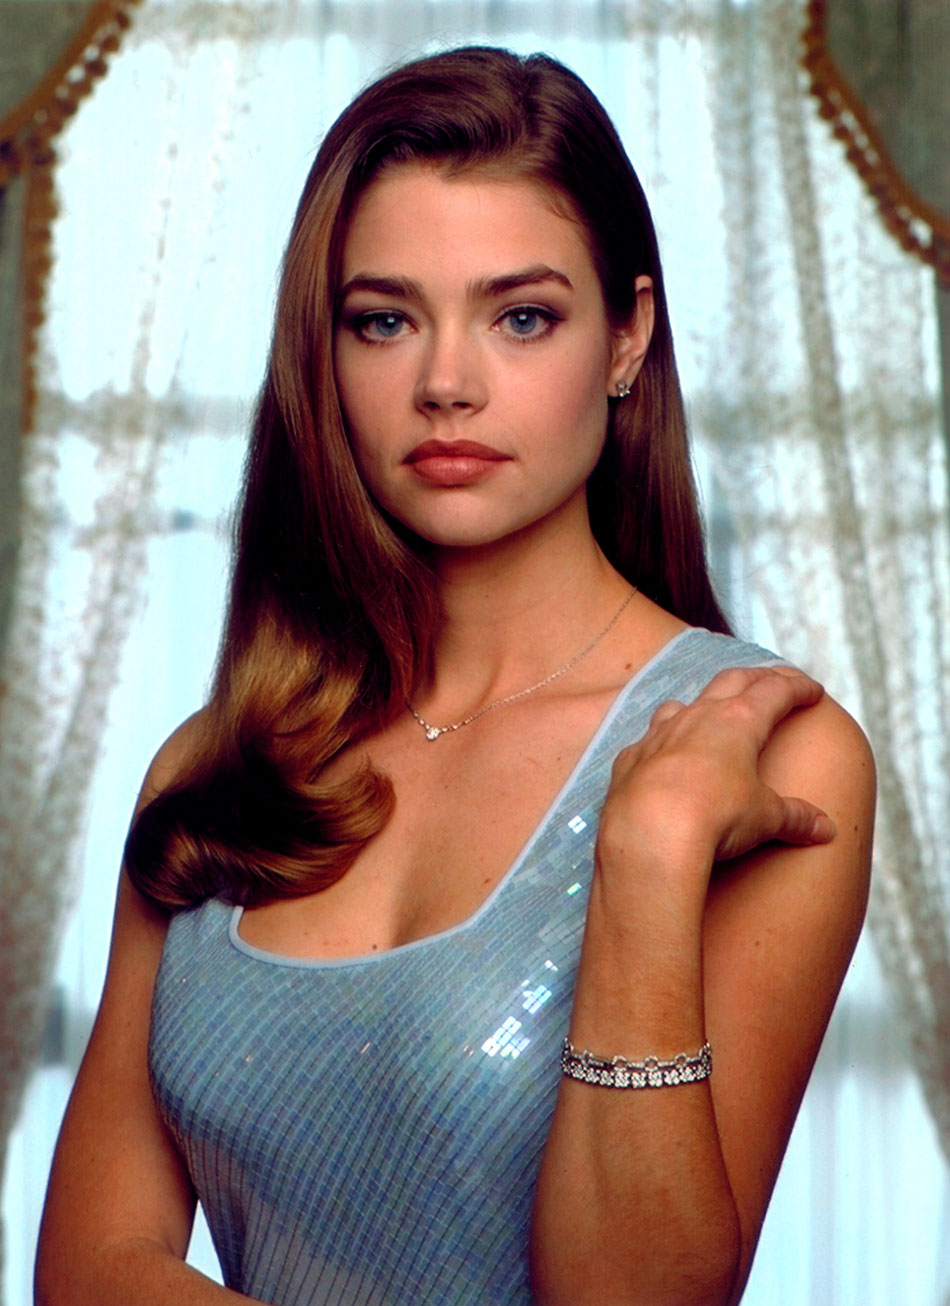 Denise Richards nudes (74 fotos), cleavage Erotica, Instagram, bra 2017